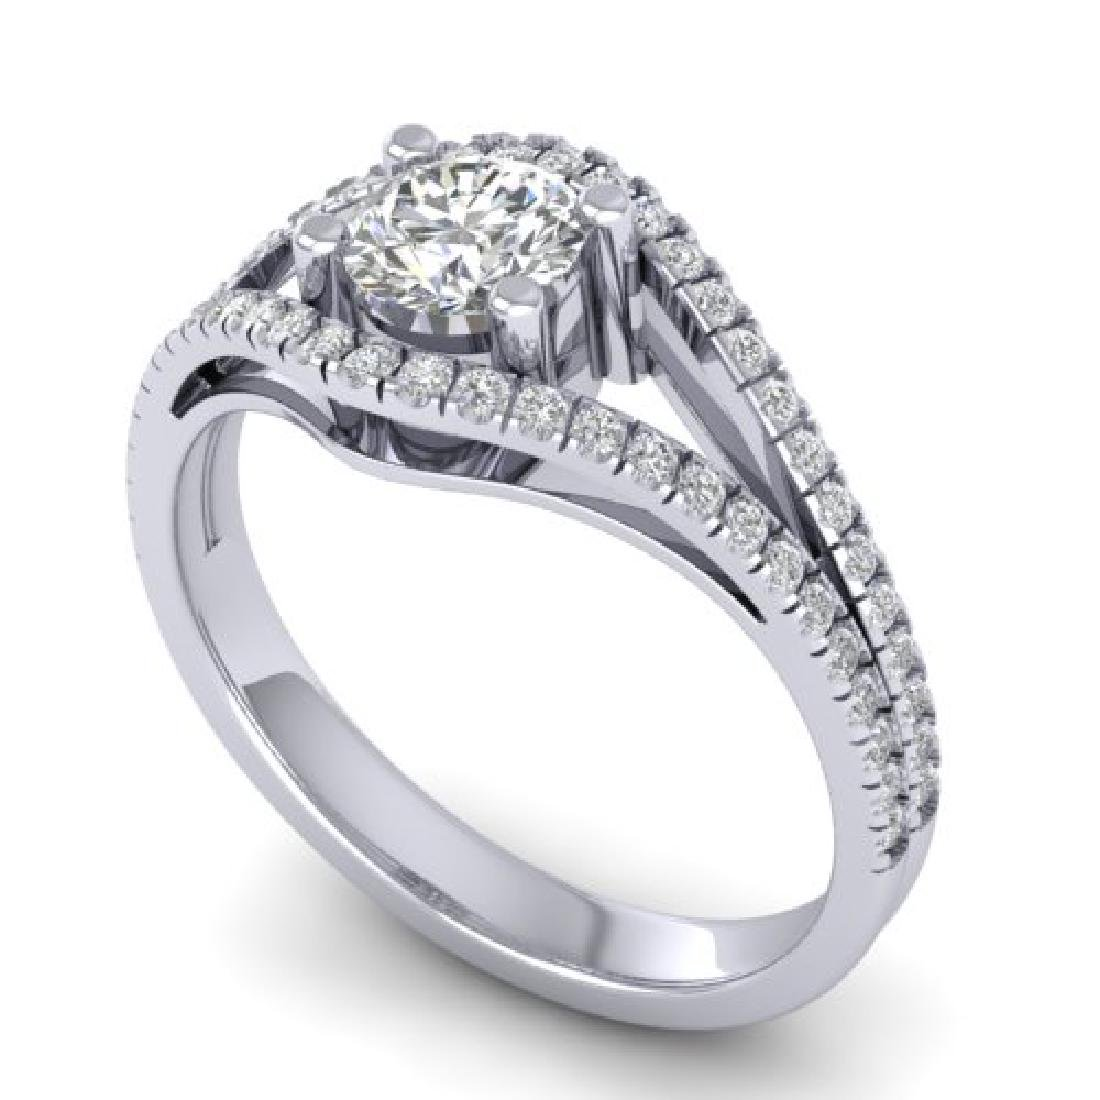 1.05 CTW Certified VS/SI Diamond Art Deco Ring 18K - 2